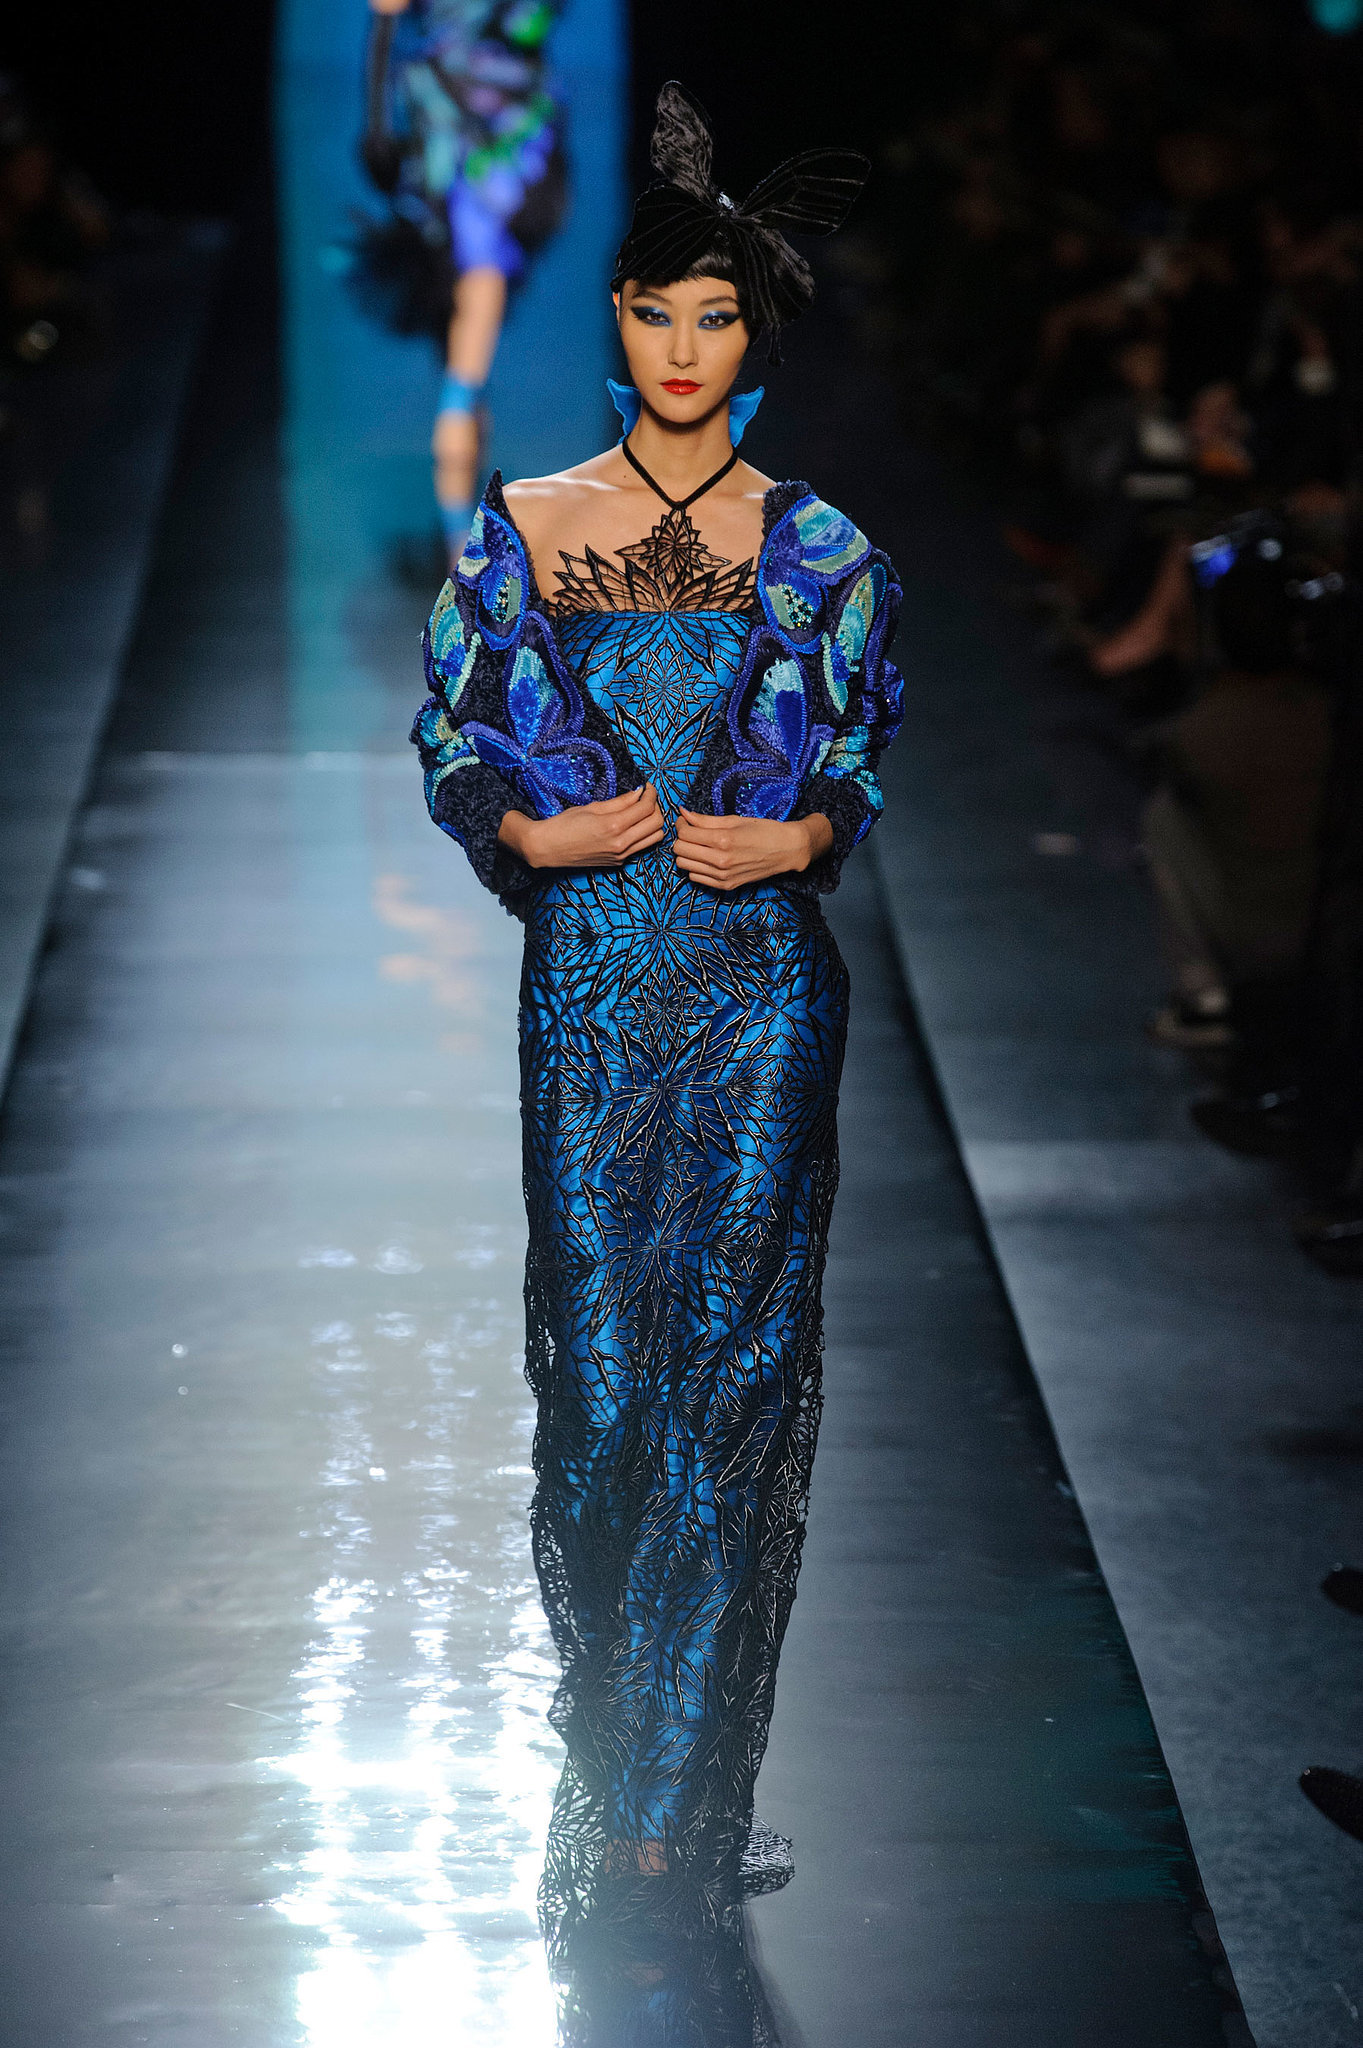 Jean paul gaultier haute couture spring 2014 jean paul for Jean paul gaultier clothing